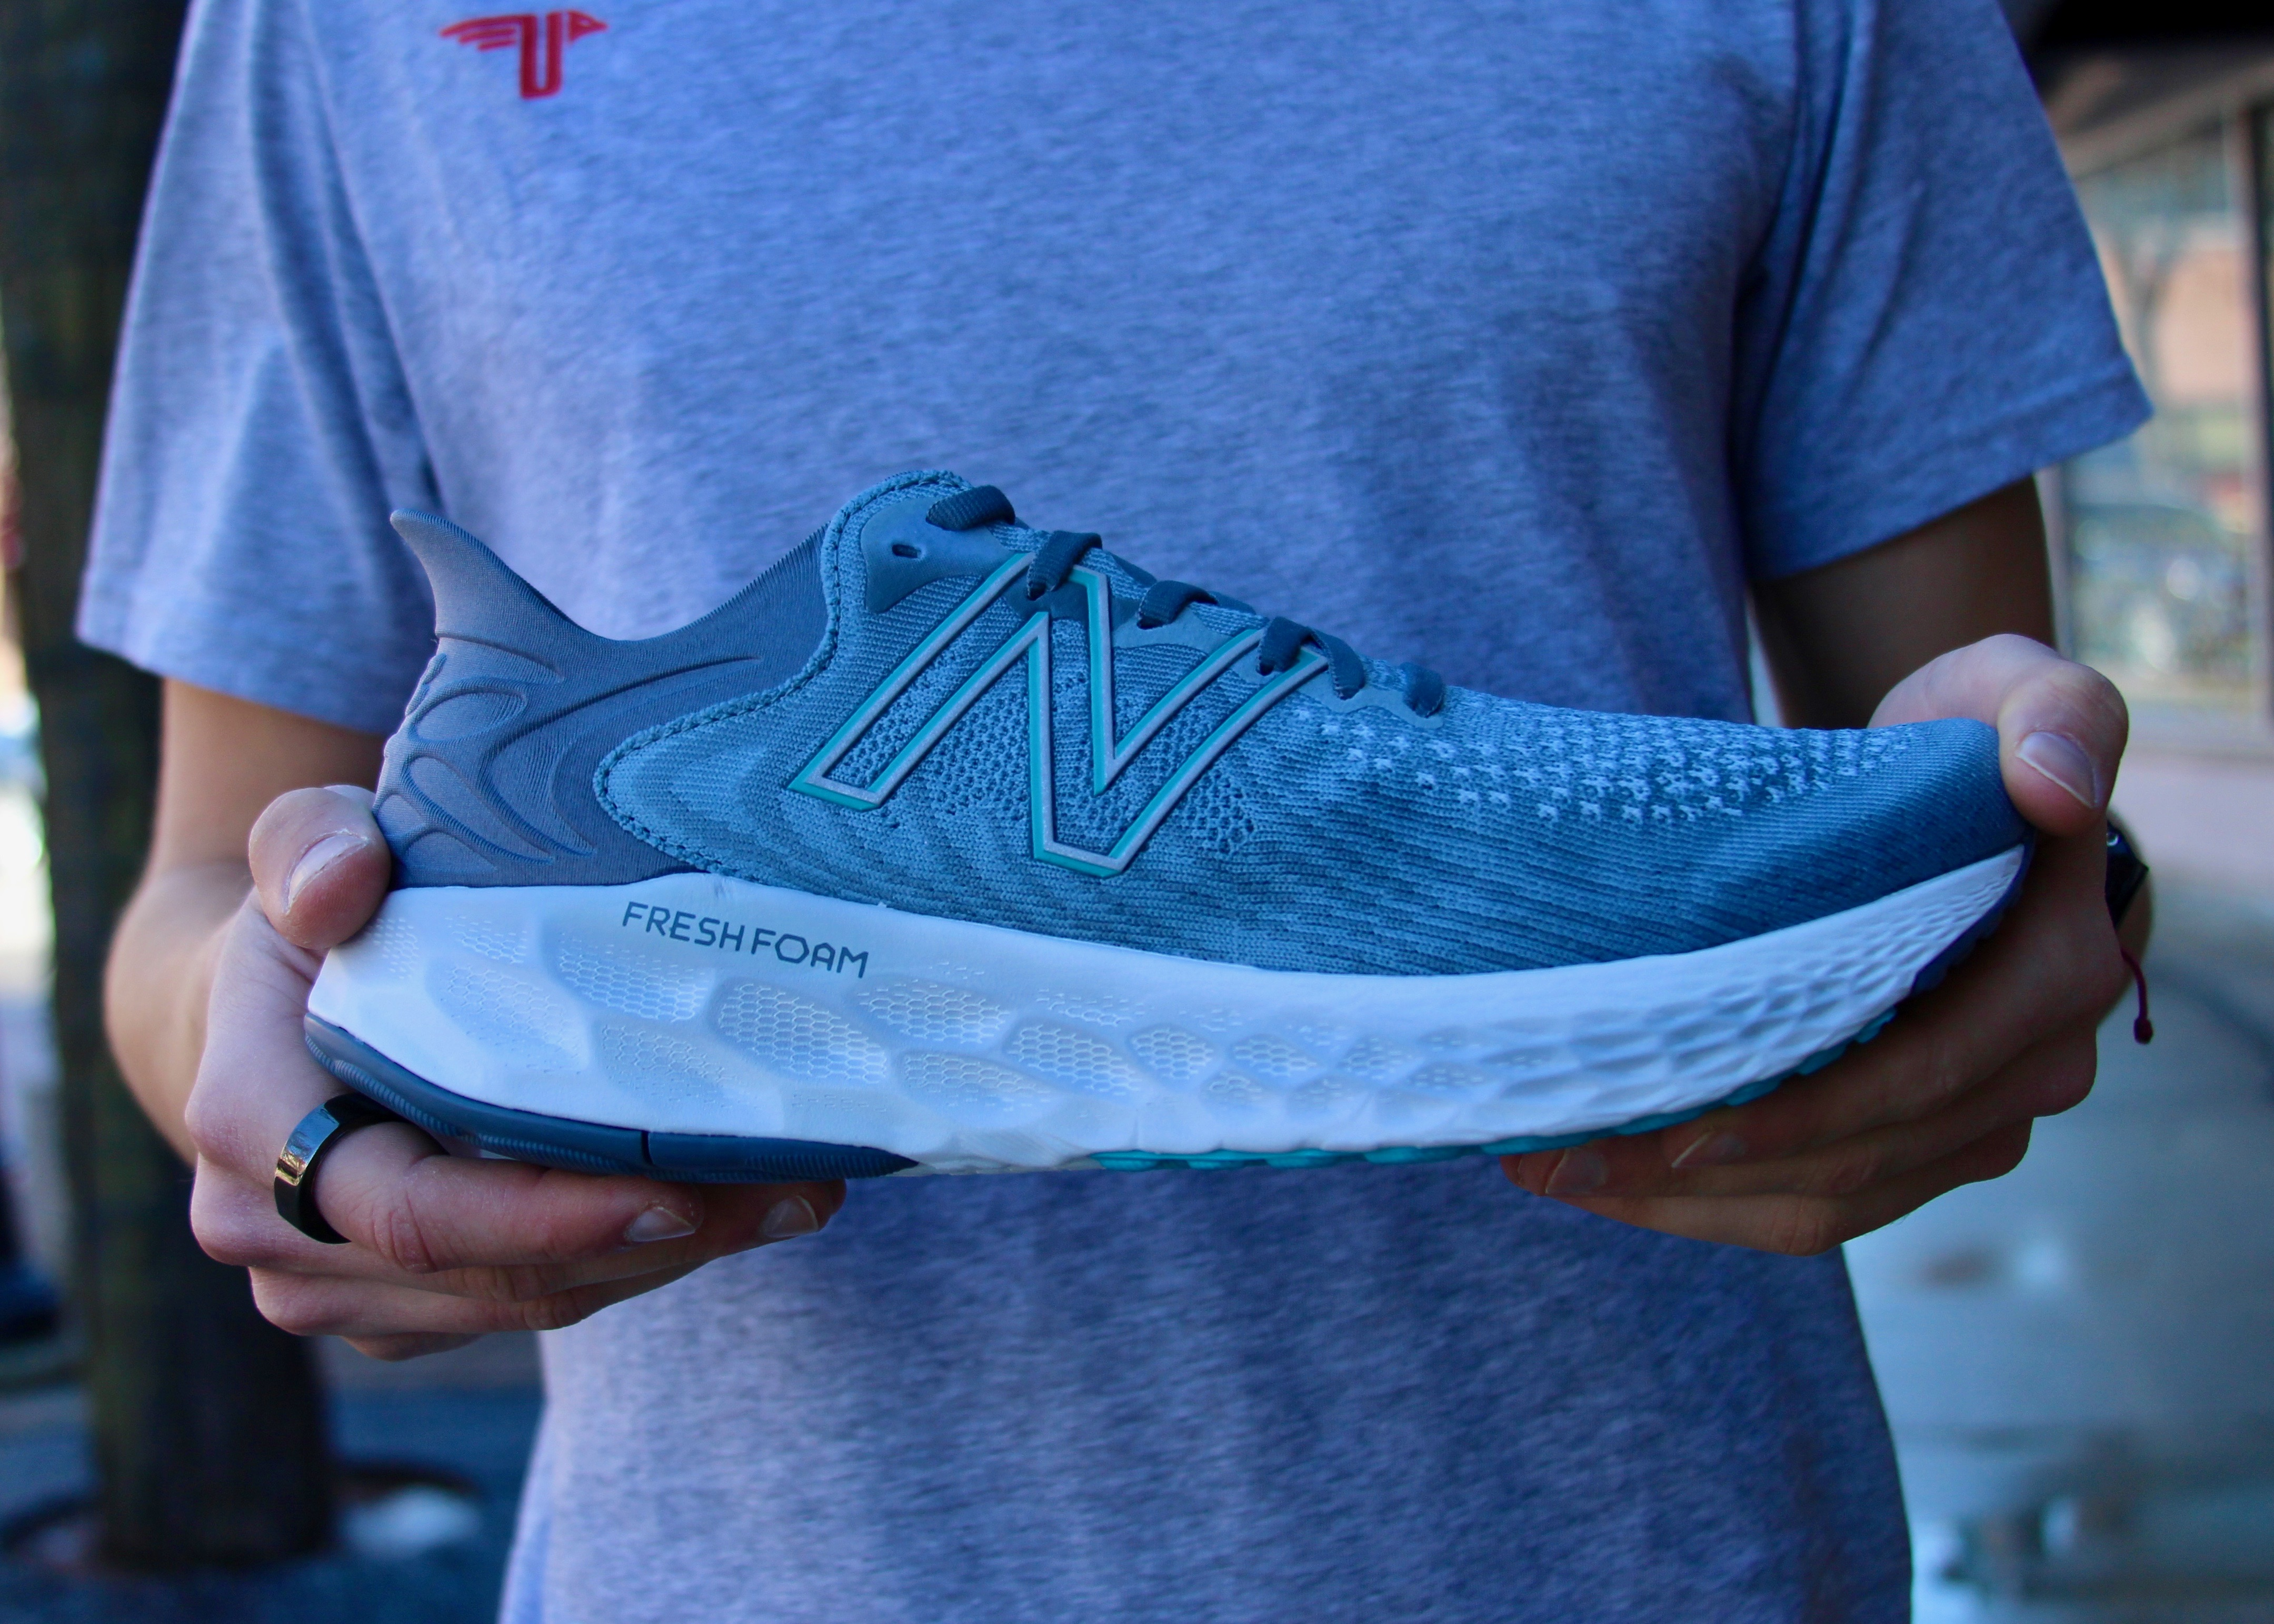 New Balance 1080v11 | Naperville Running Company | Men's Running Shoe